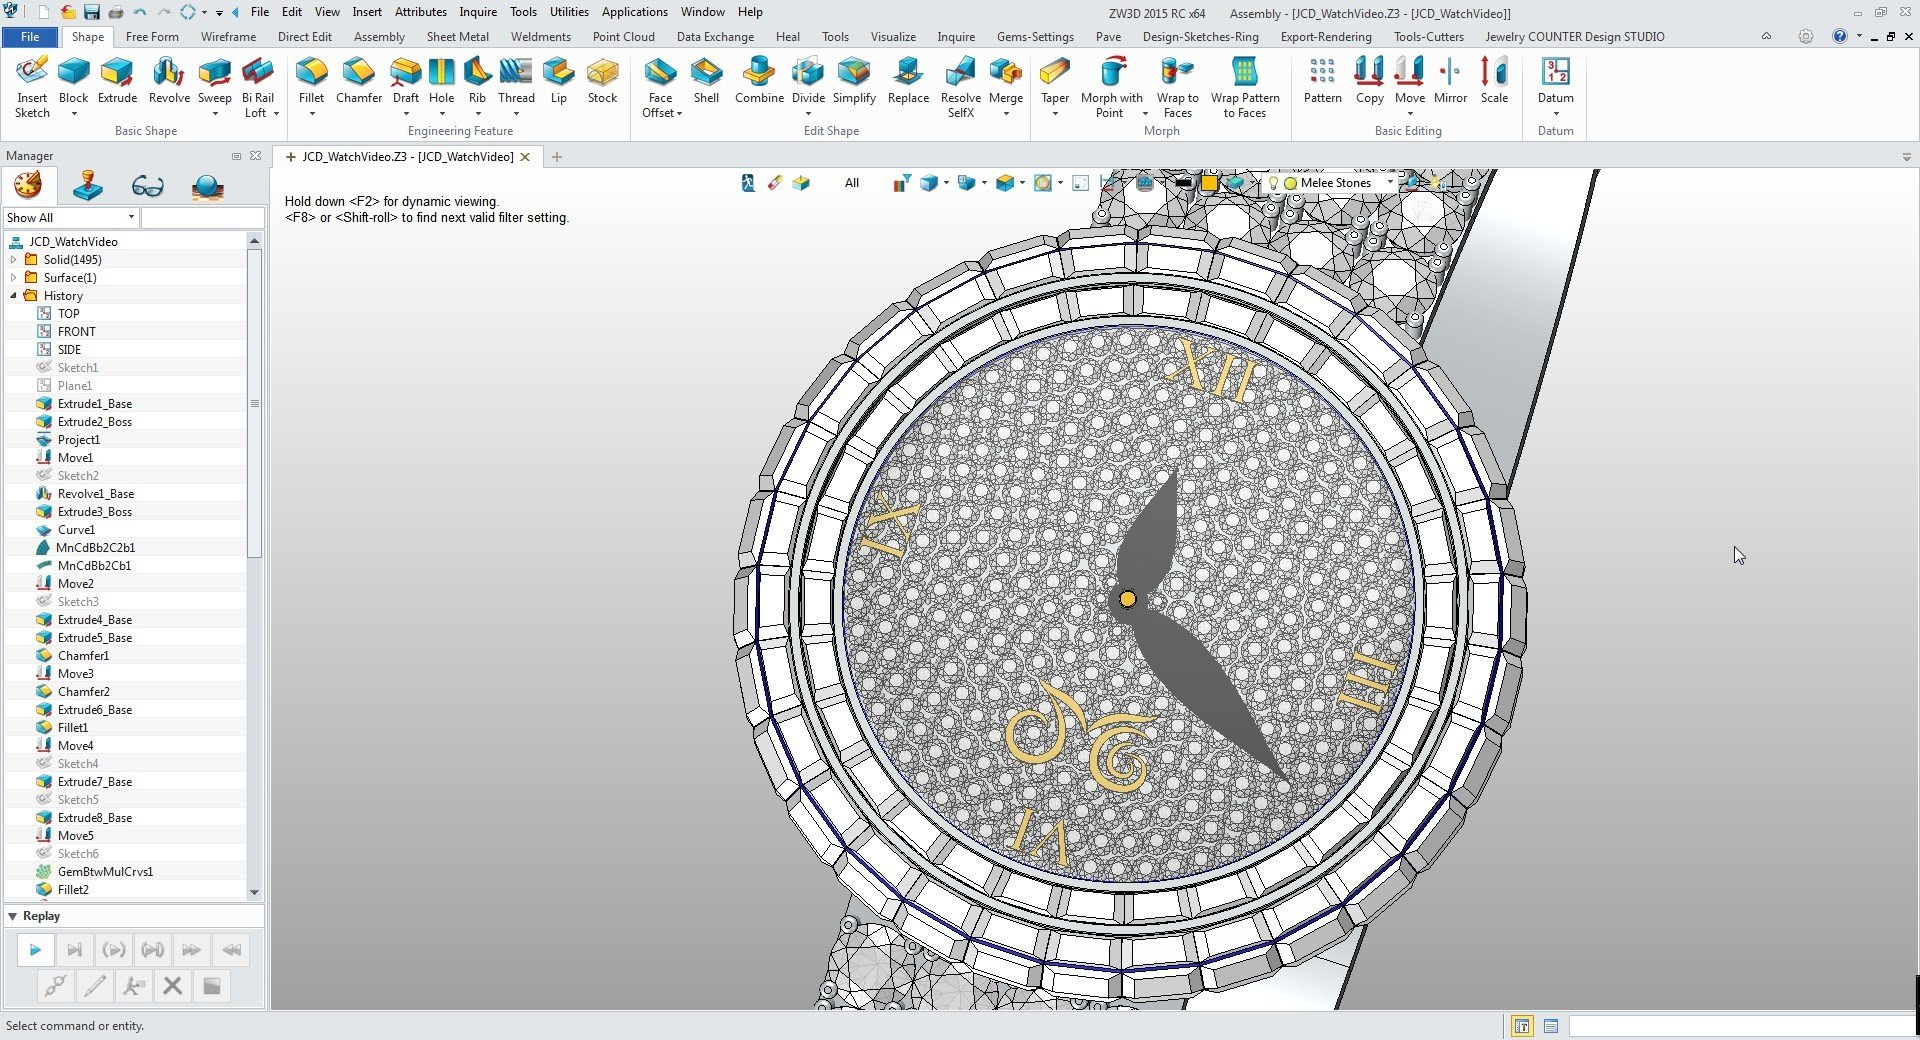 Cad design fashion software Fashion Computing: Design Techniques And CAD - m